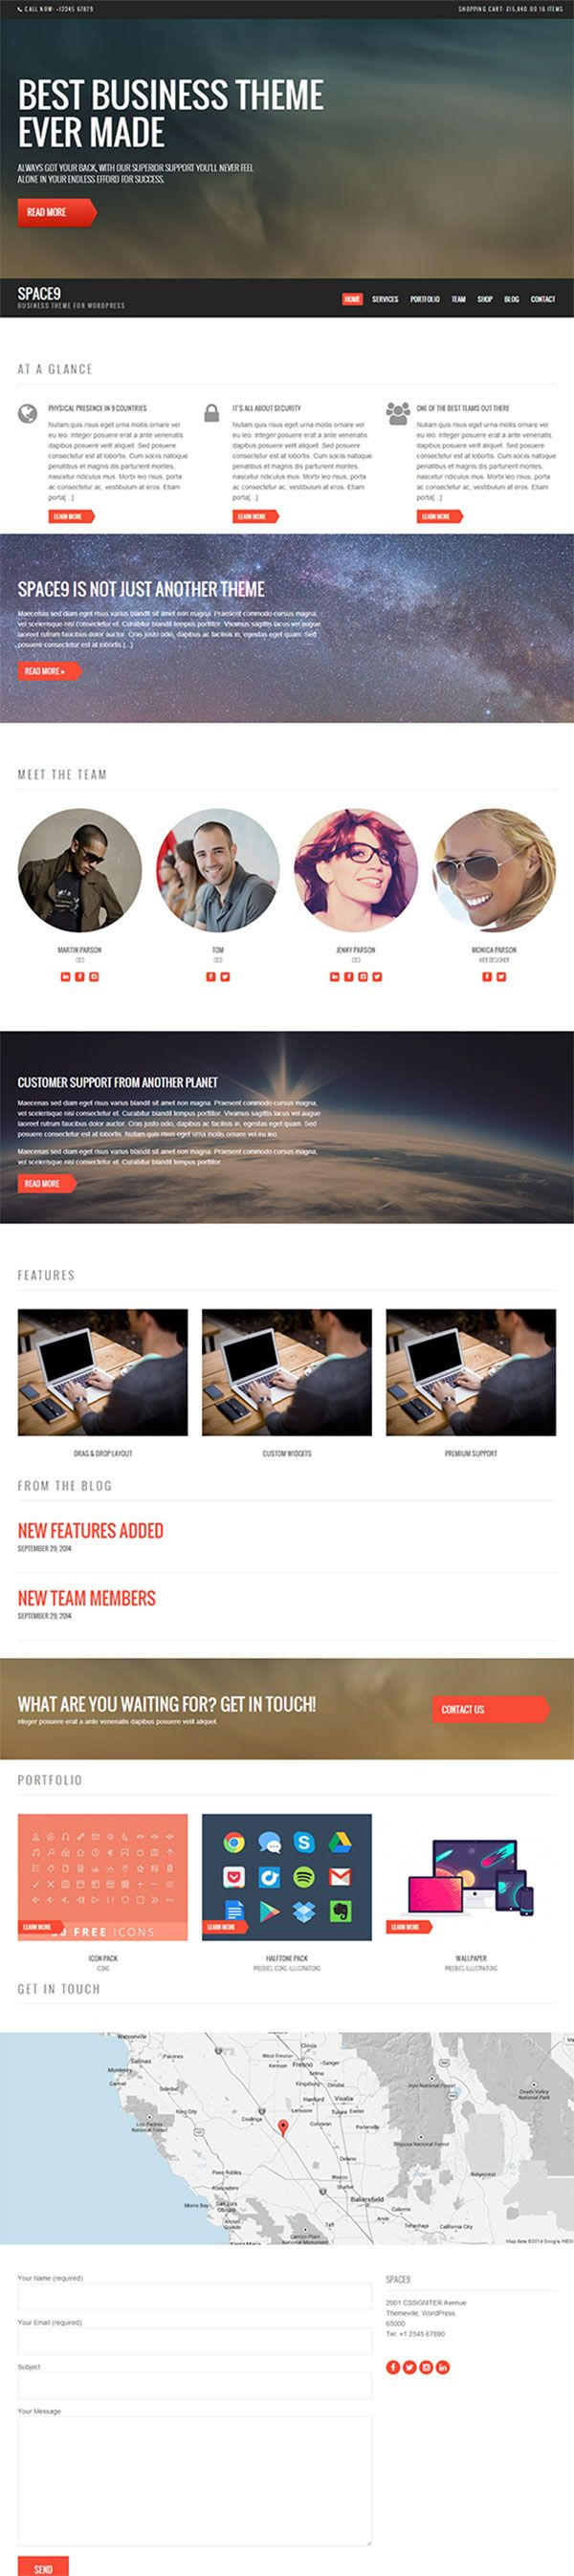 Space9 Business WordPress Theme Review  CSSIgniter